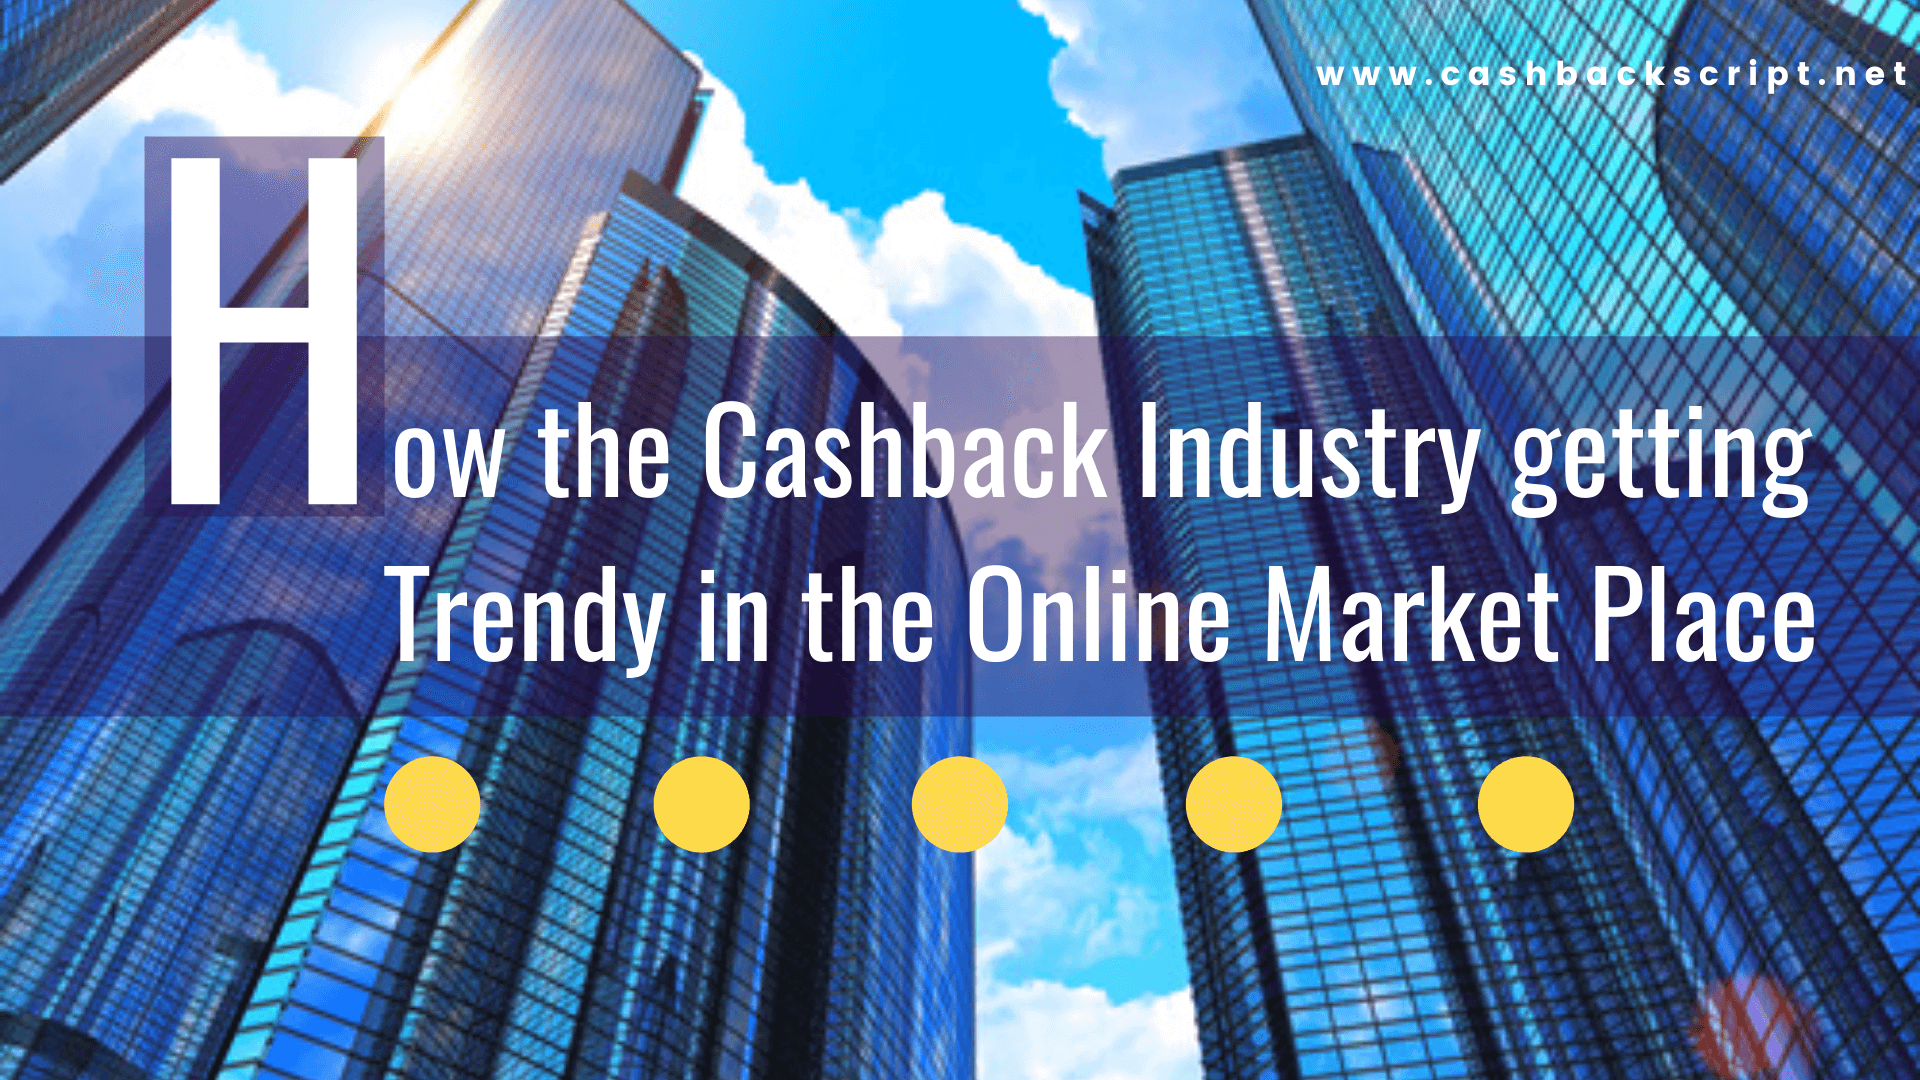 How the Cashback Industry Getting Trendy in the Online Market Place